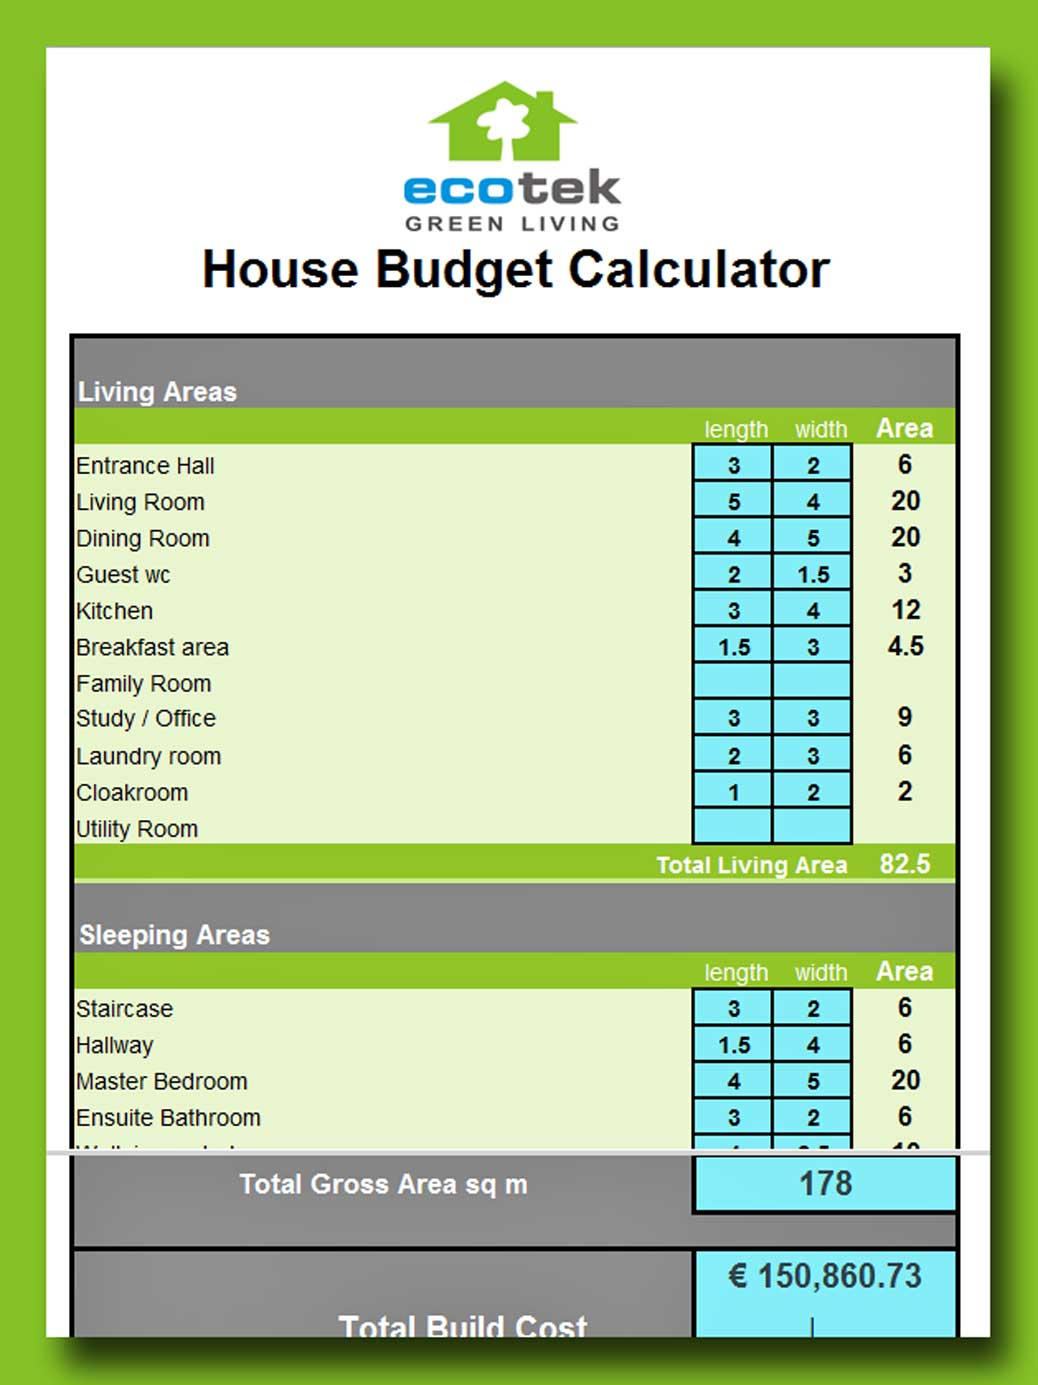 Cost Estimate To Build A House Driverlayer Search Engine: cost of building house calculator